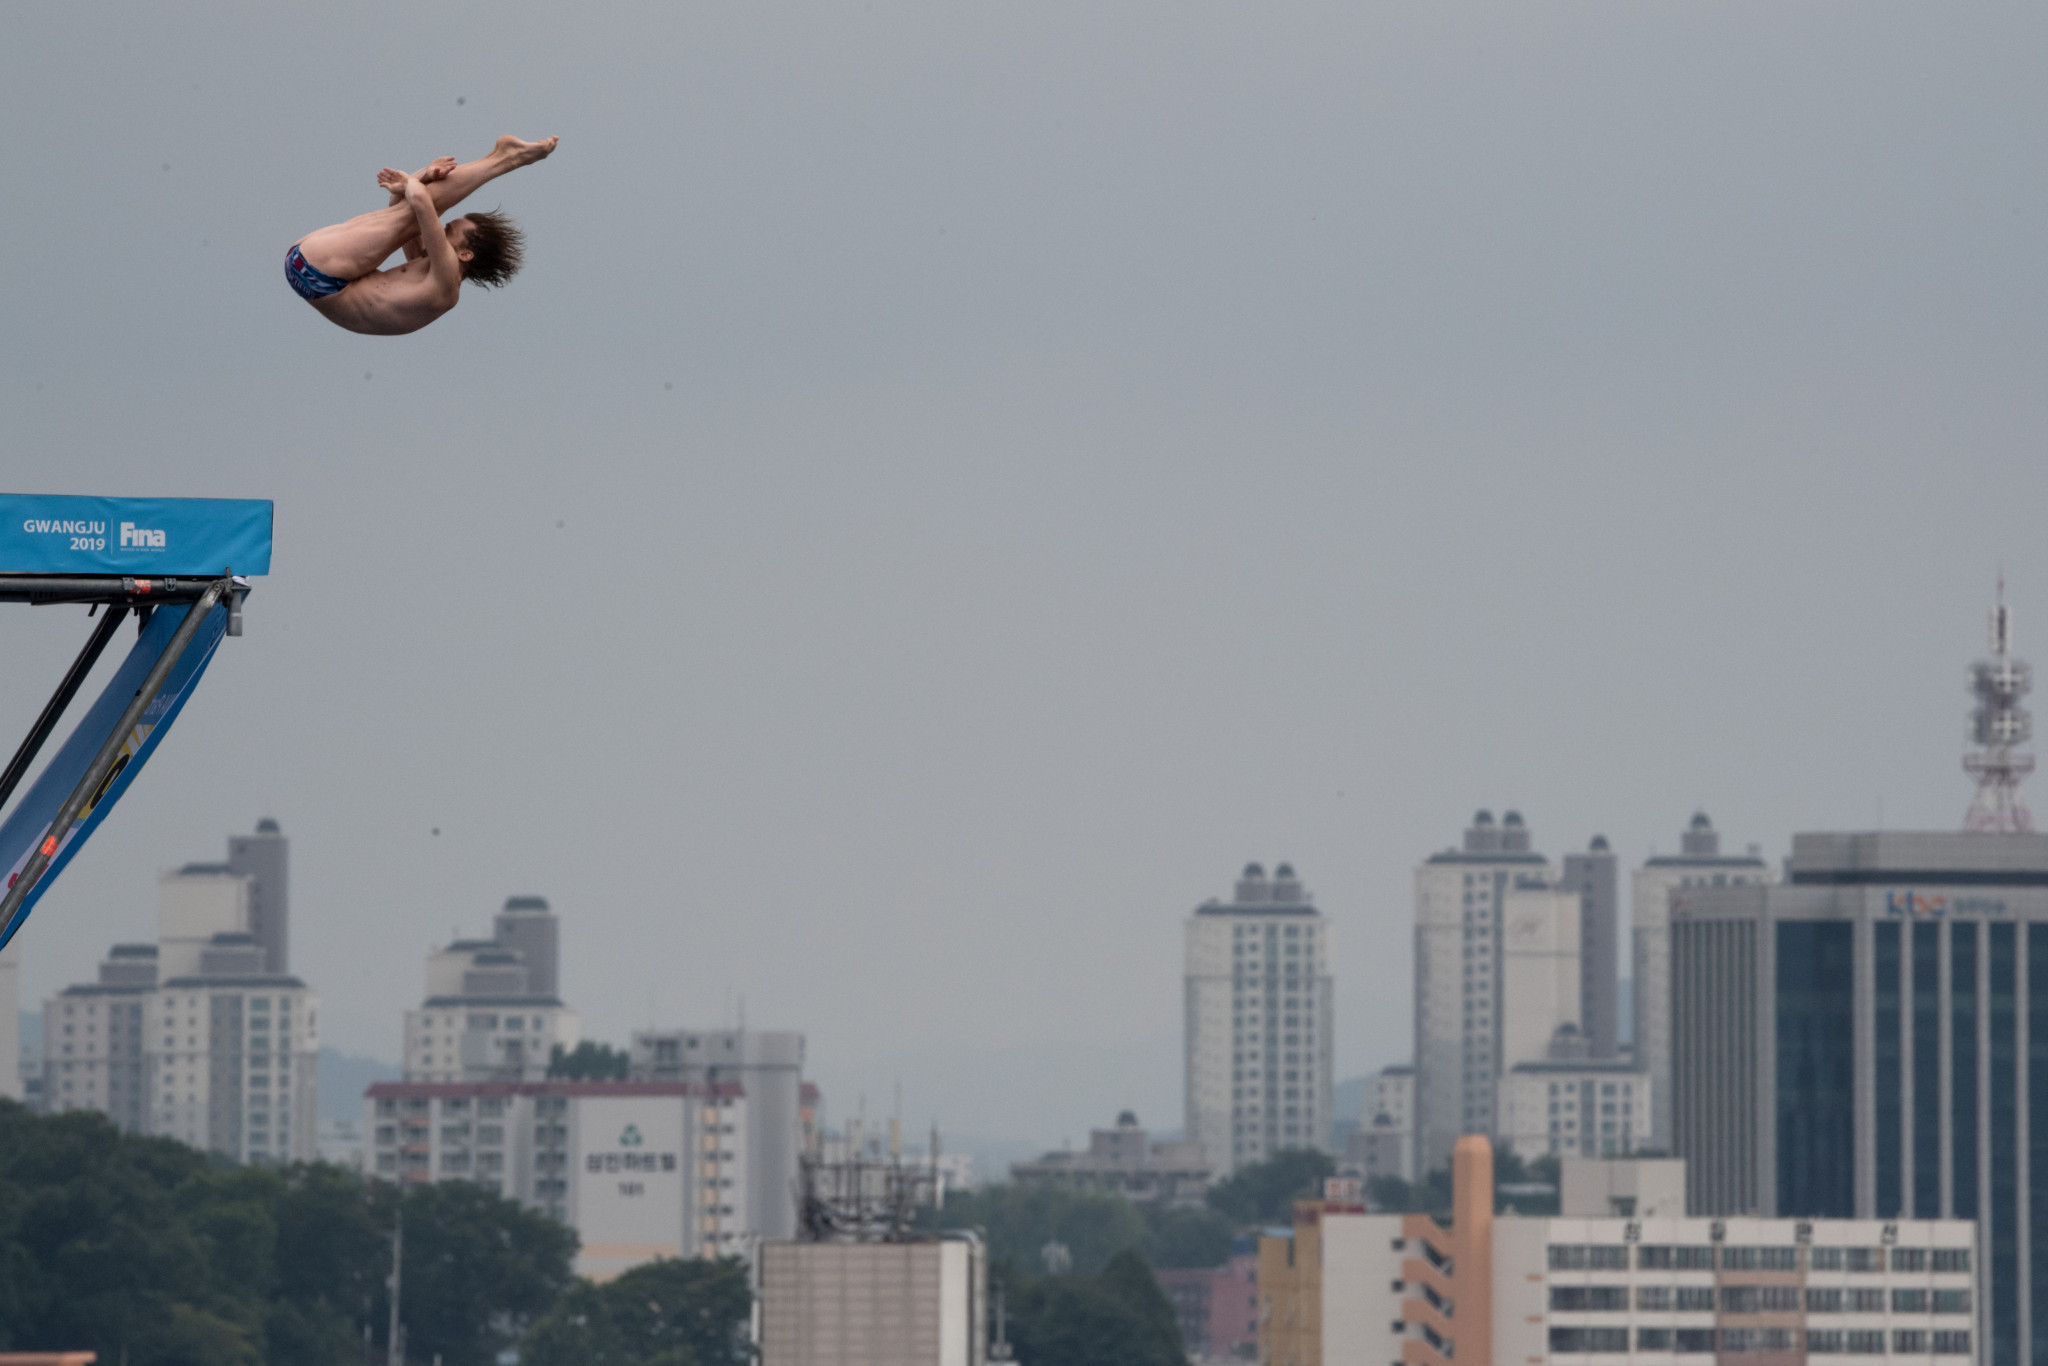 Gary Hunt of Britain won the men's high diving ©Getty Images